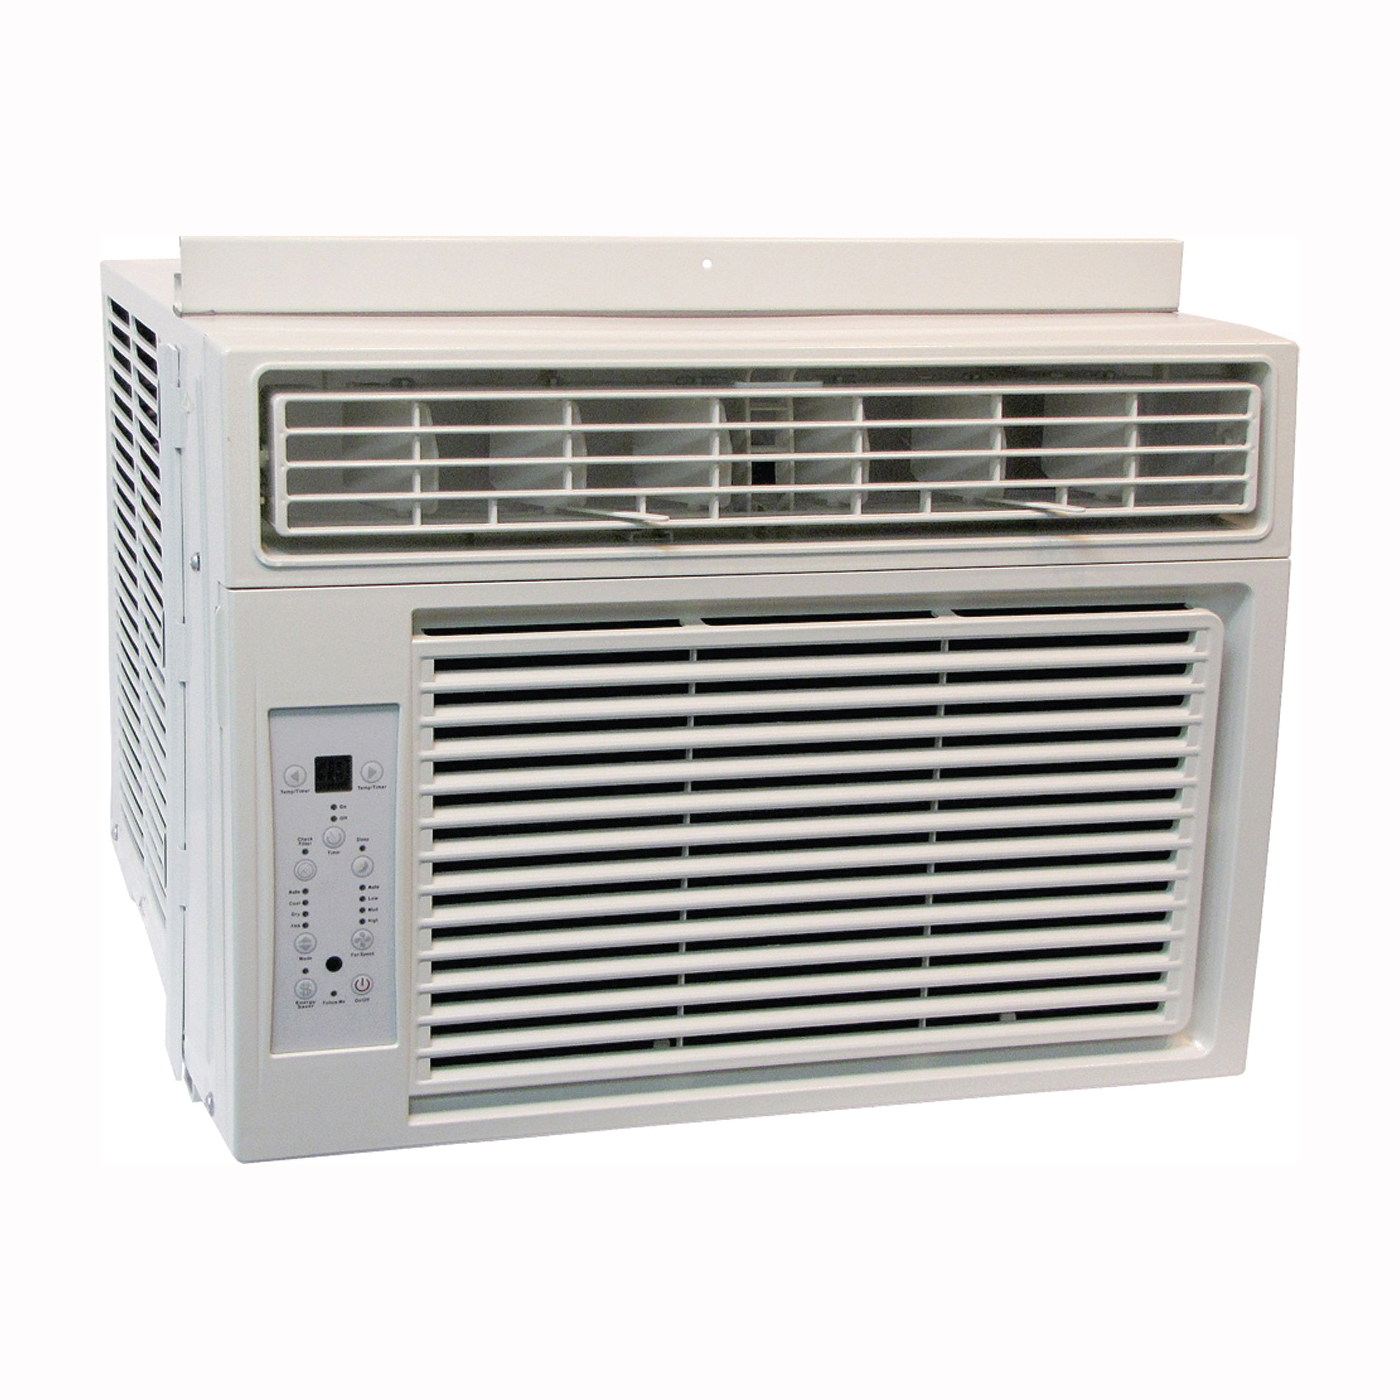 Picture of Comfort-Aire RADS-101P Room Air Conditioner, 115 V, 60 Hz, 10,000 Btu/hr Cooling, 12 EER, 59/55/53 dB